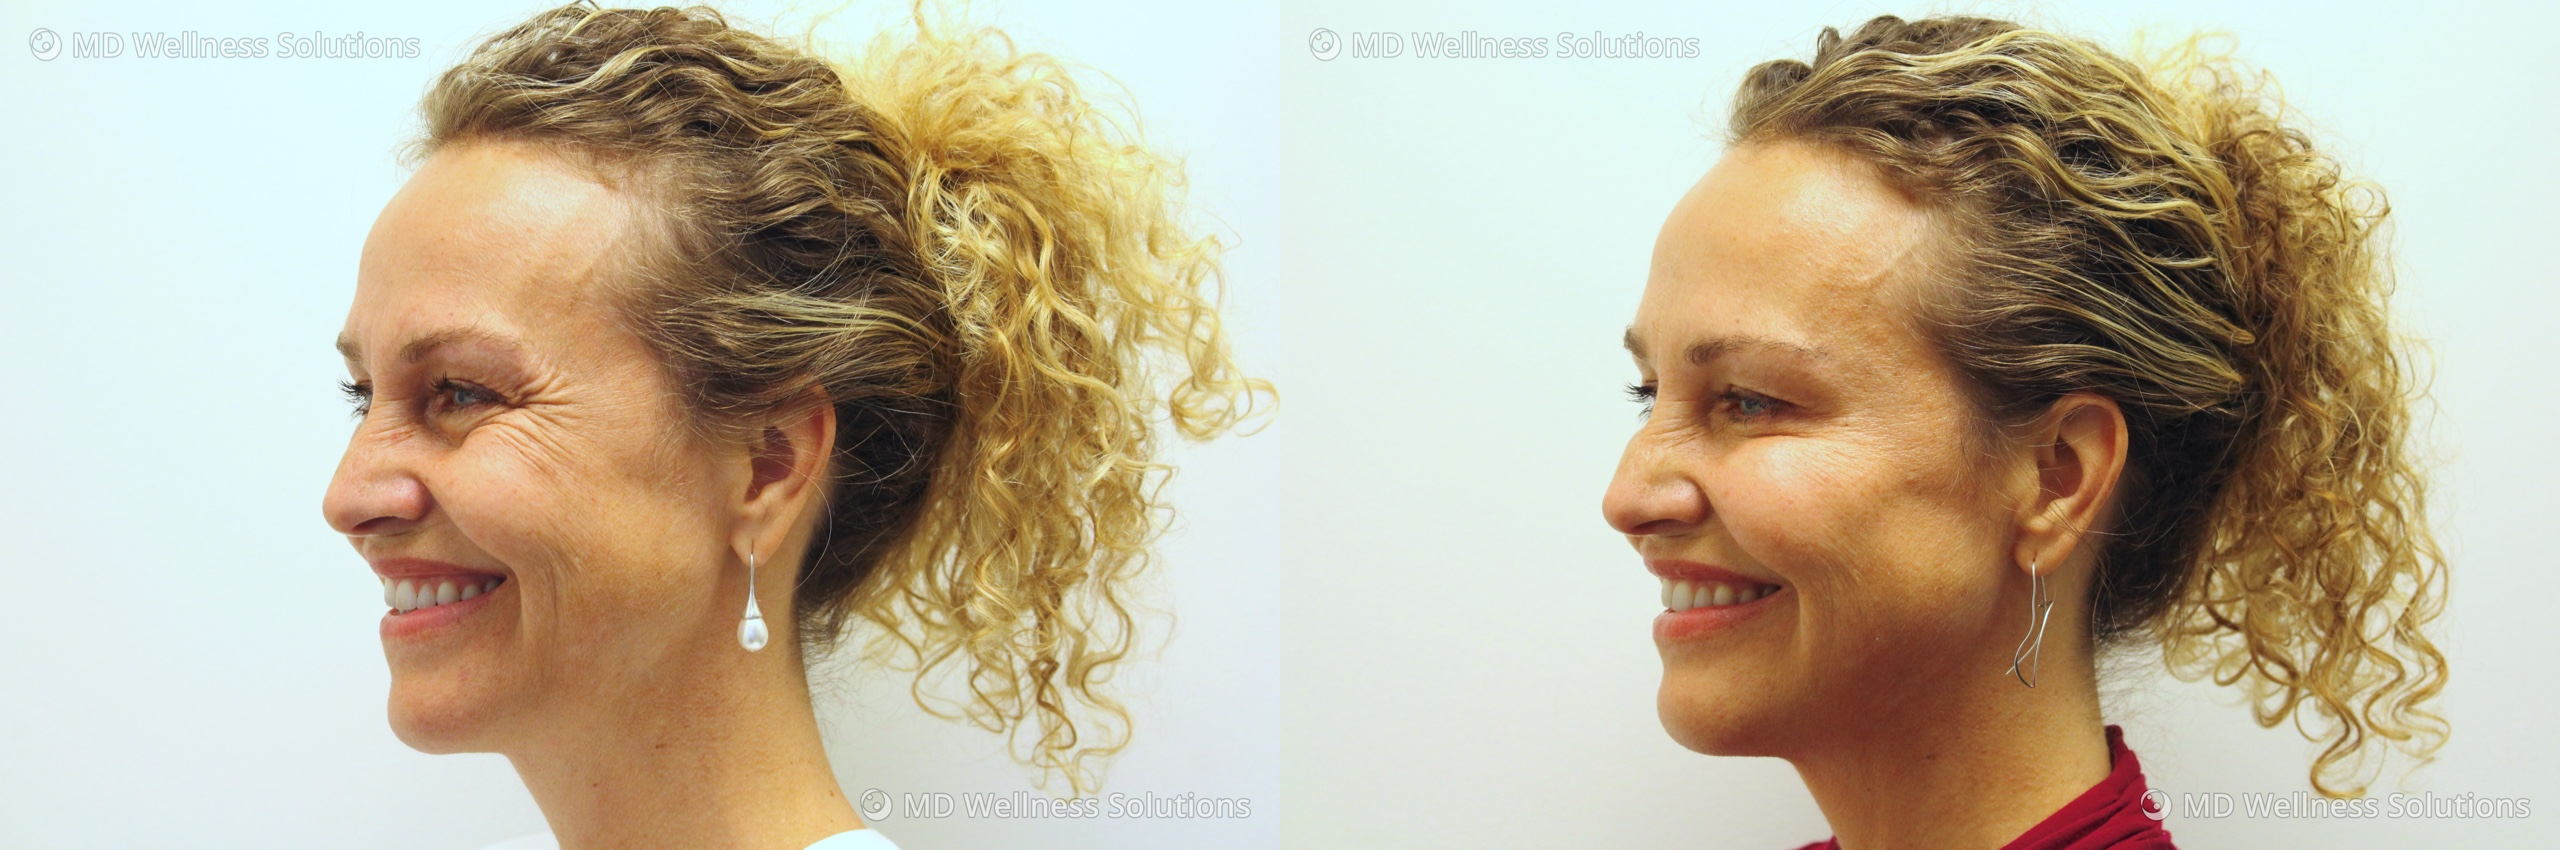 45-54 year old woman before and after neurotoxin treatment